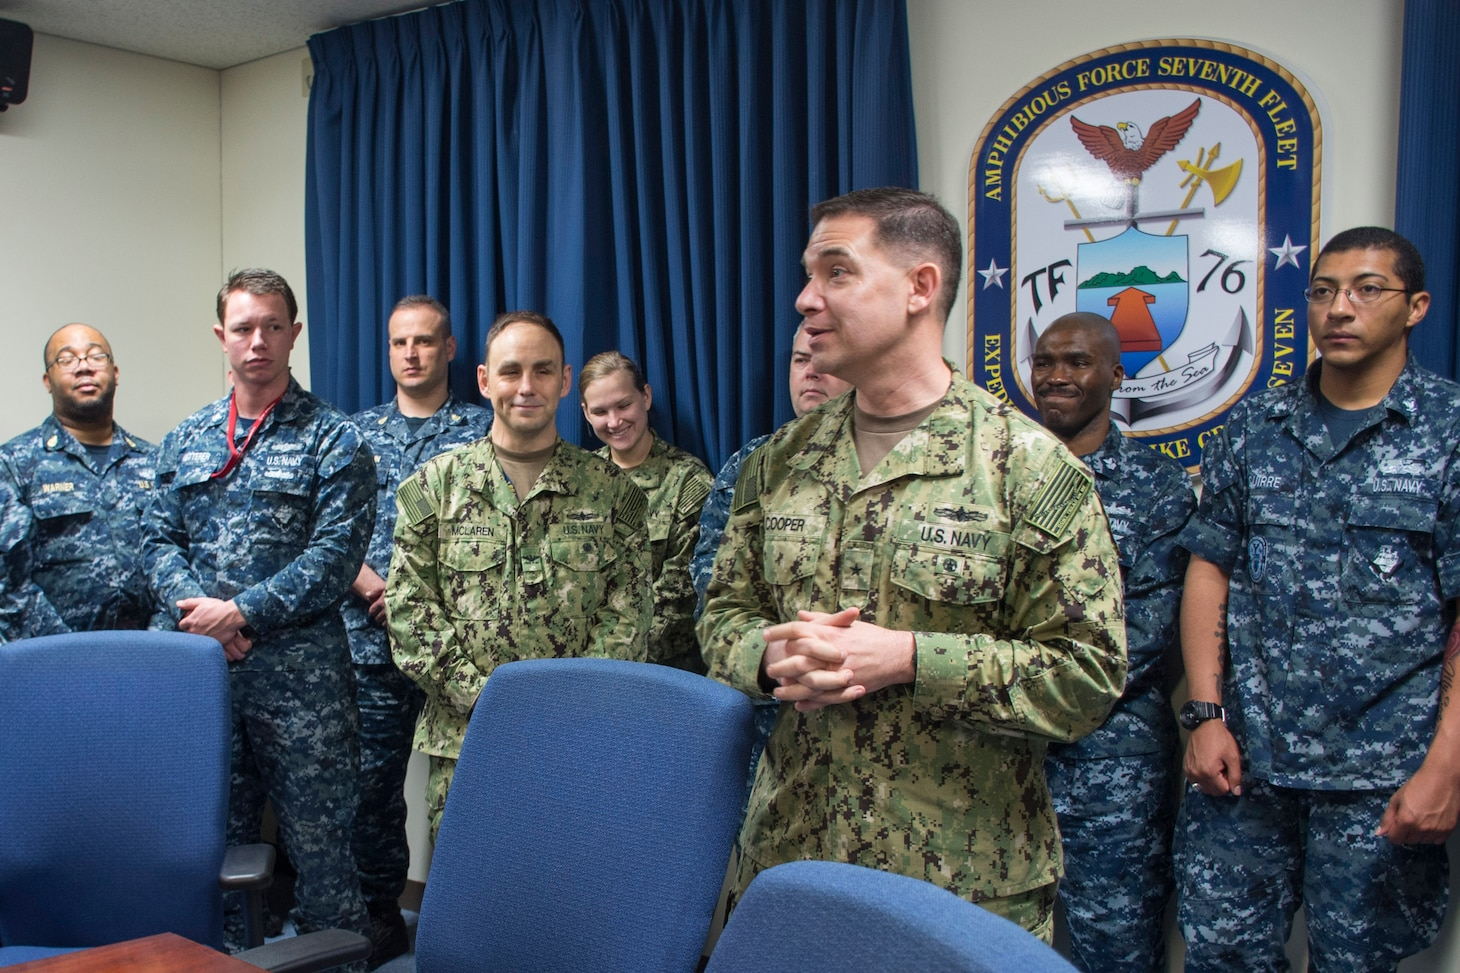 CTF 76 Welcomes New Commander